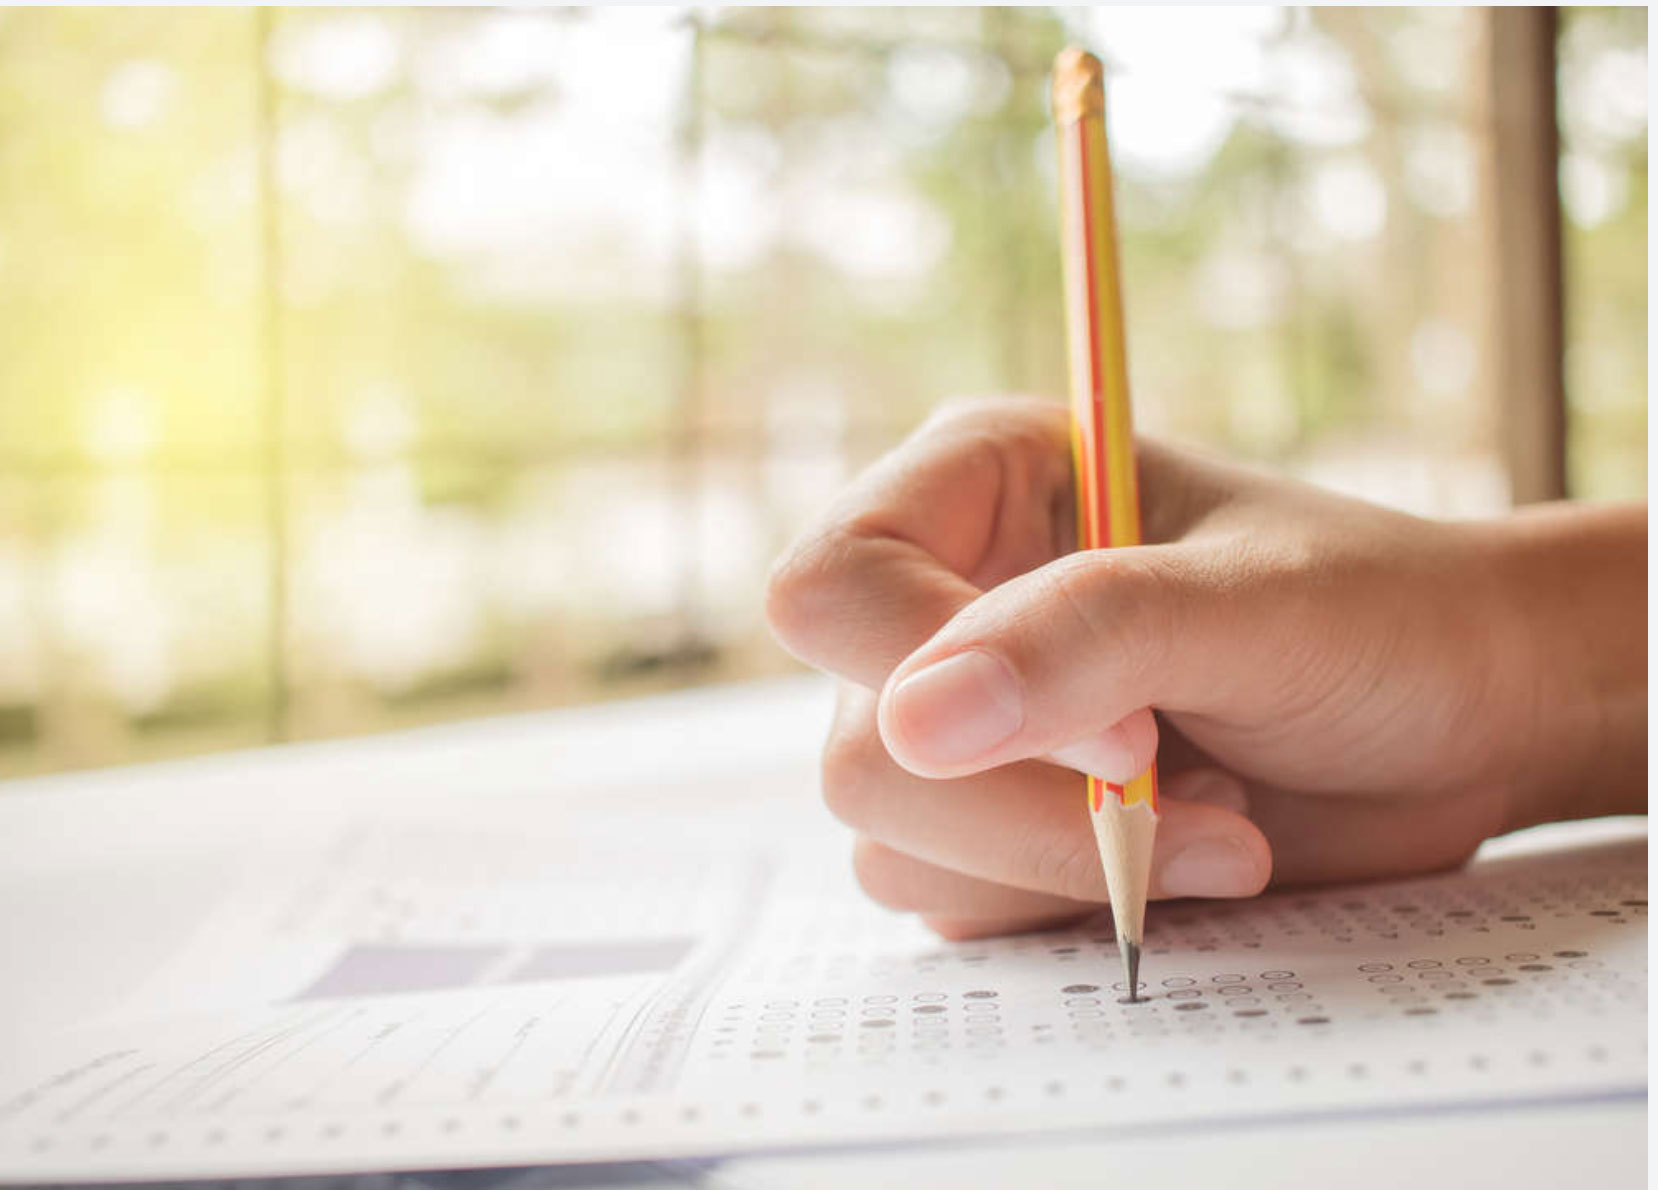 hight resolution of The Do's and Don'ts of Test Prep - TeacherVision